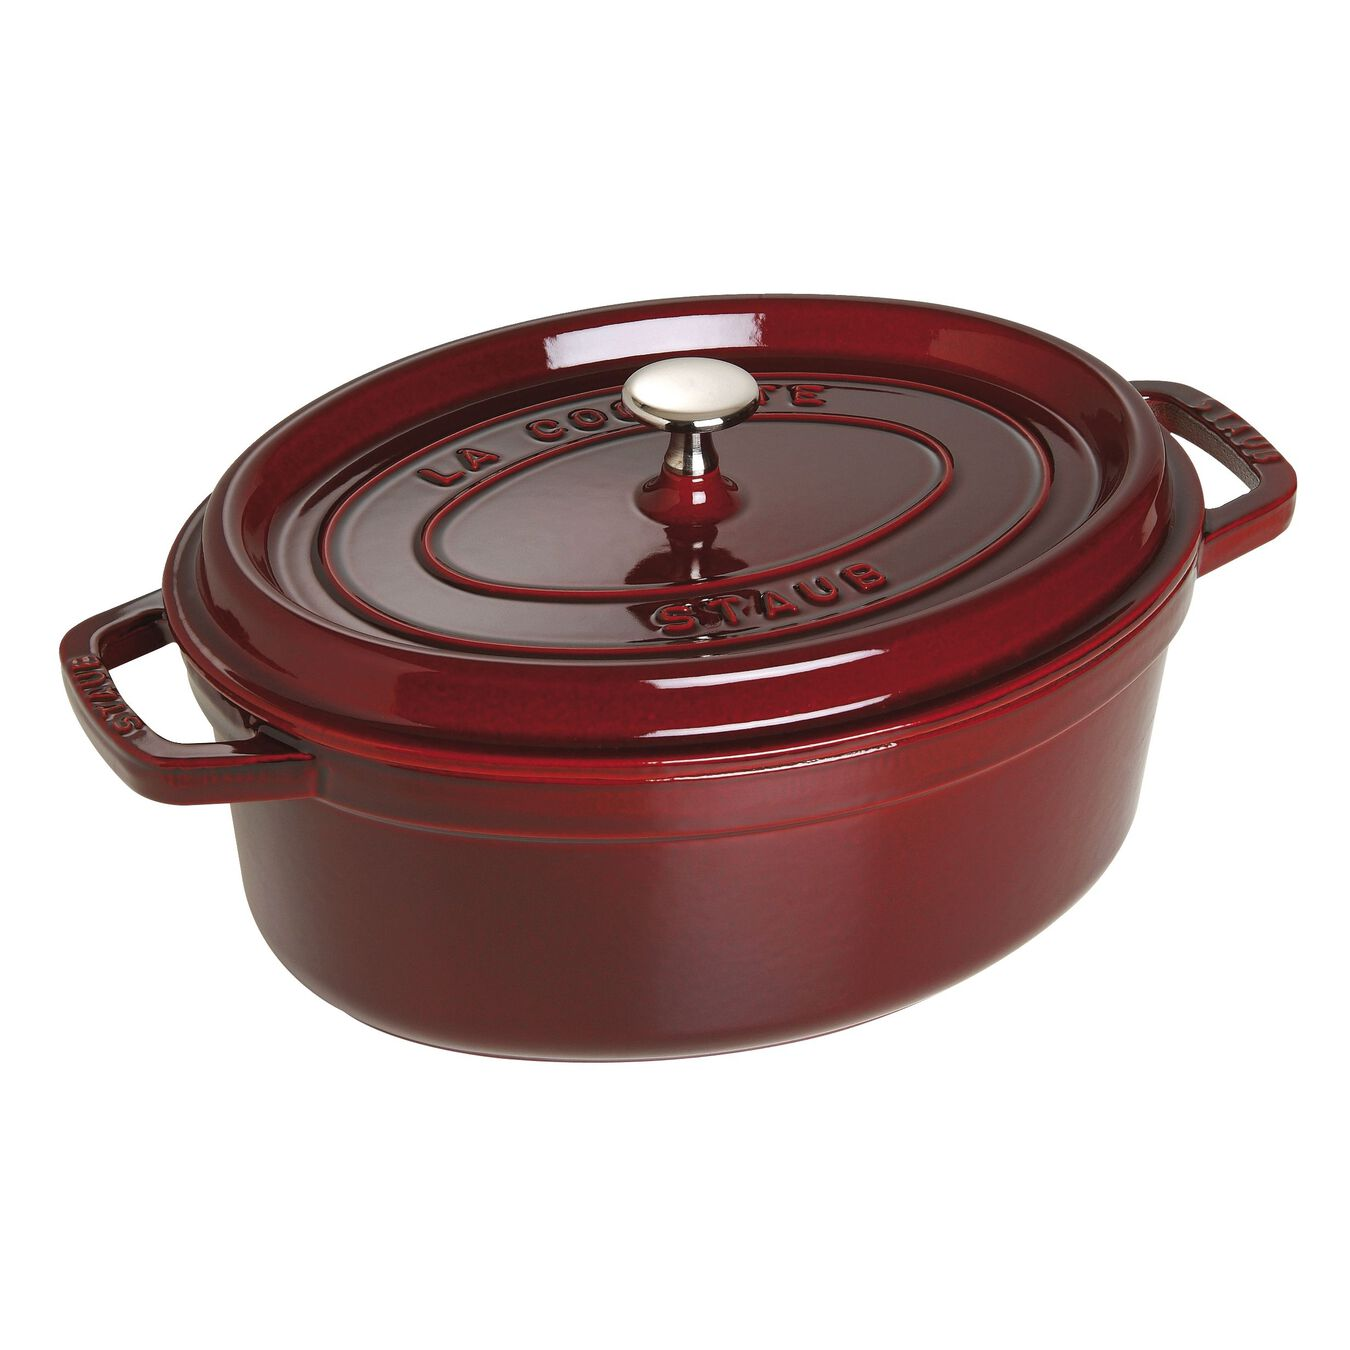 4.25 l Cast iron oval Cocotte, Grenadine-Red,,large 1